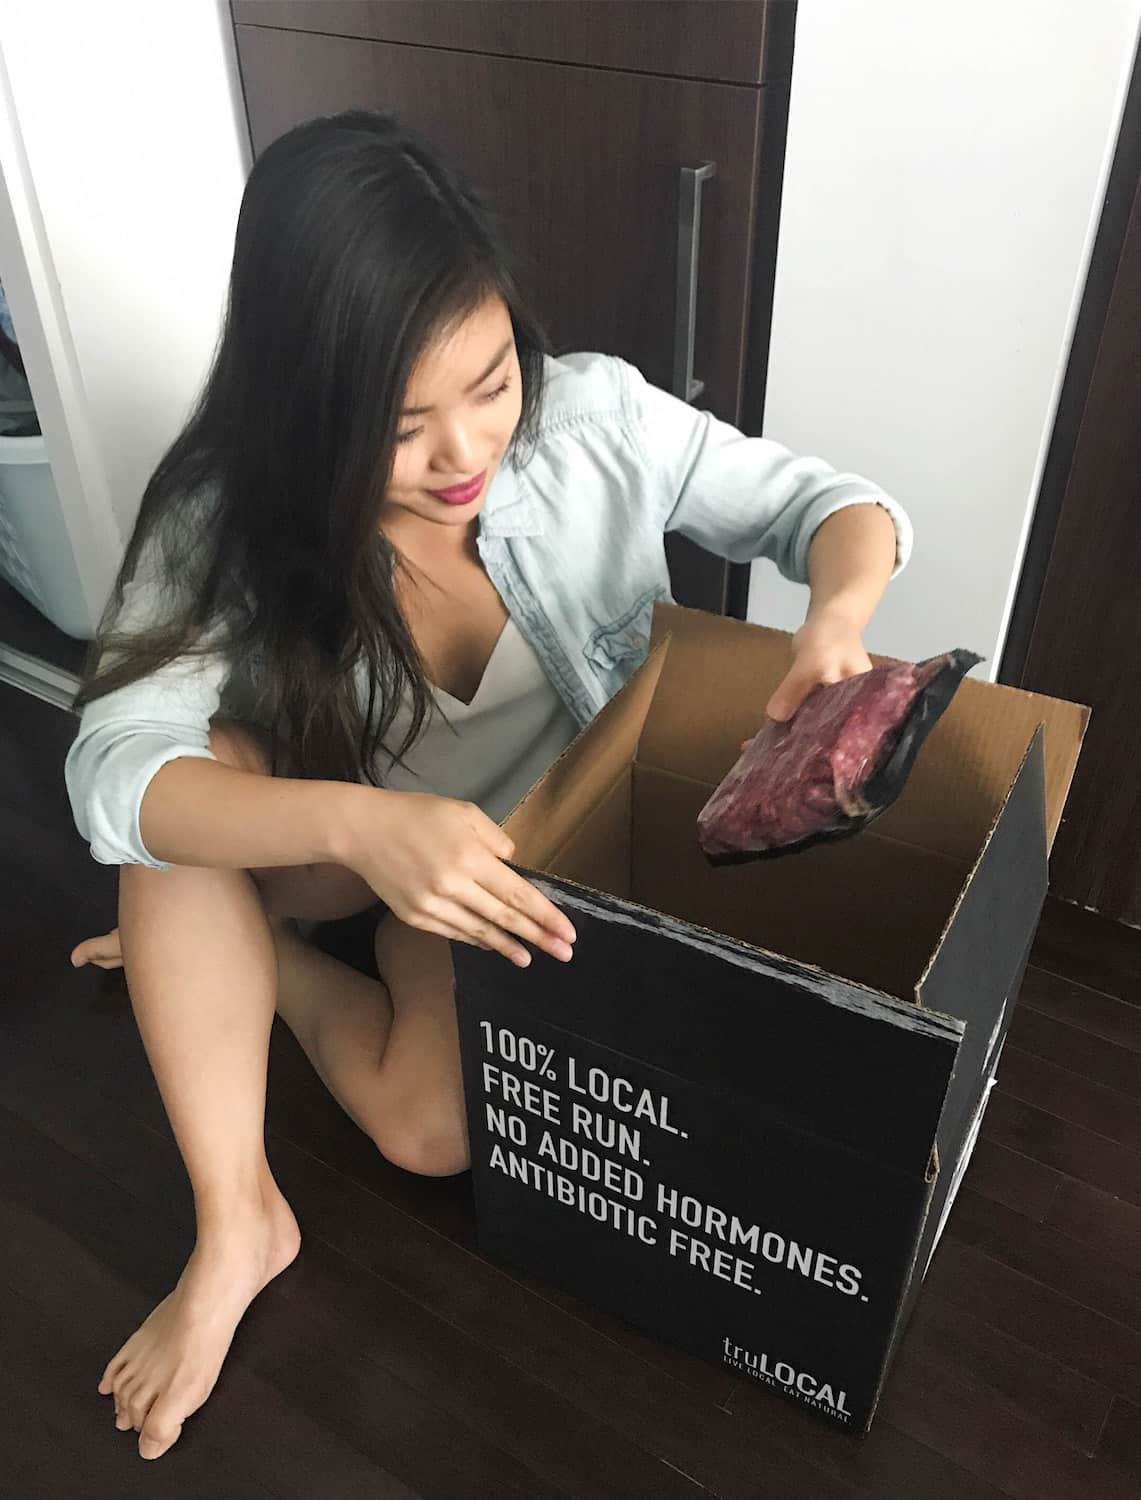 Monthly meat delivery from truLOCAL